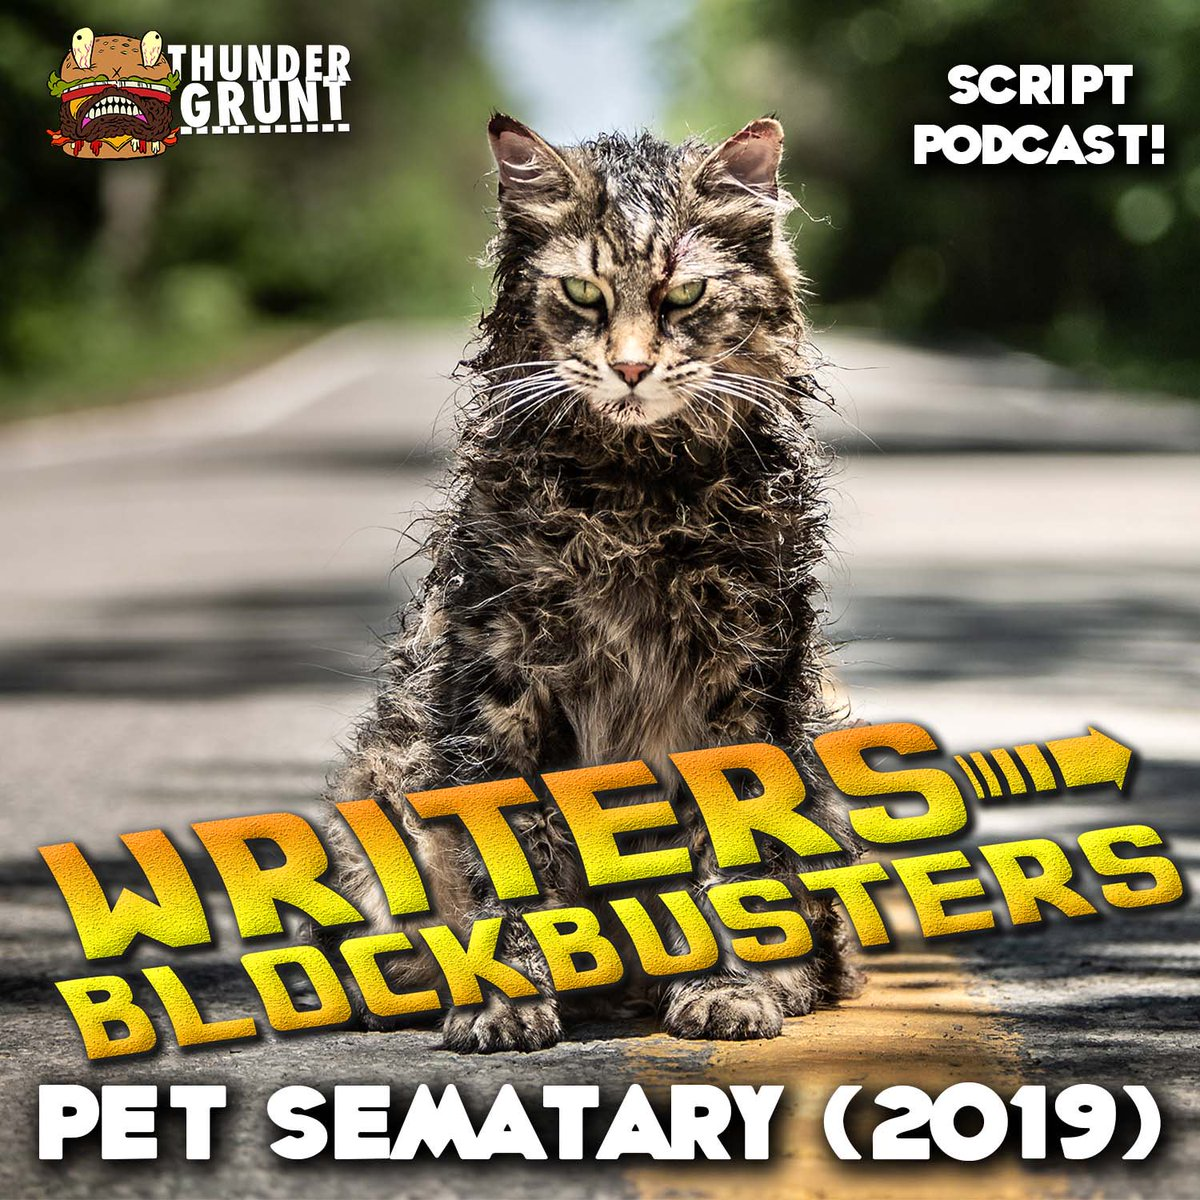 Our podcast WRITERS/BLOCKBUSTERS examines hit movies for #screenwriting tools and techniques.   This week with @ThunderGruntBob, @Jamie_Nash and I ponder whether dead is better and discuss lessons learned from PET SEMATARY!   https:// thundergrunt.com/e/writersblock busters-032-pet-sematary-2019/ &nbsp; …  <br>http://pic.twitter.com/XF3UjuePQL